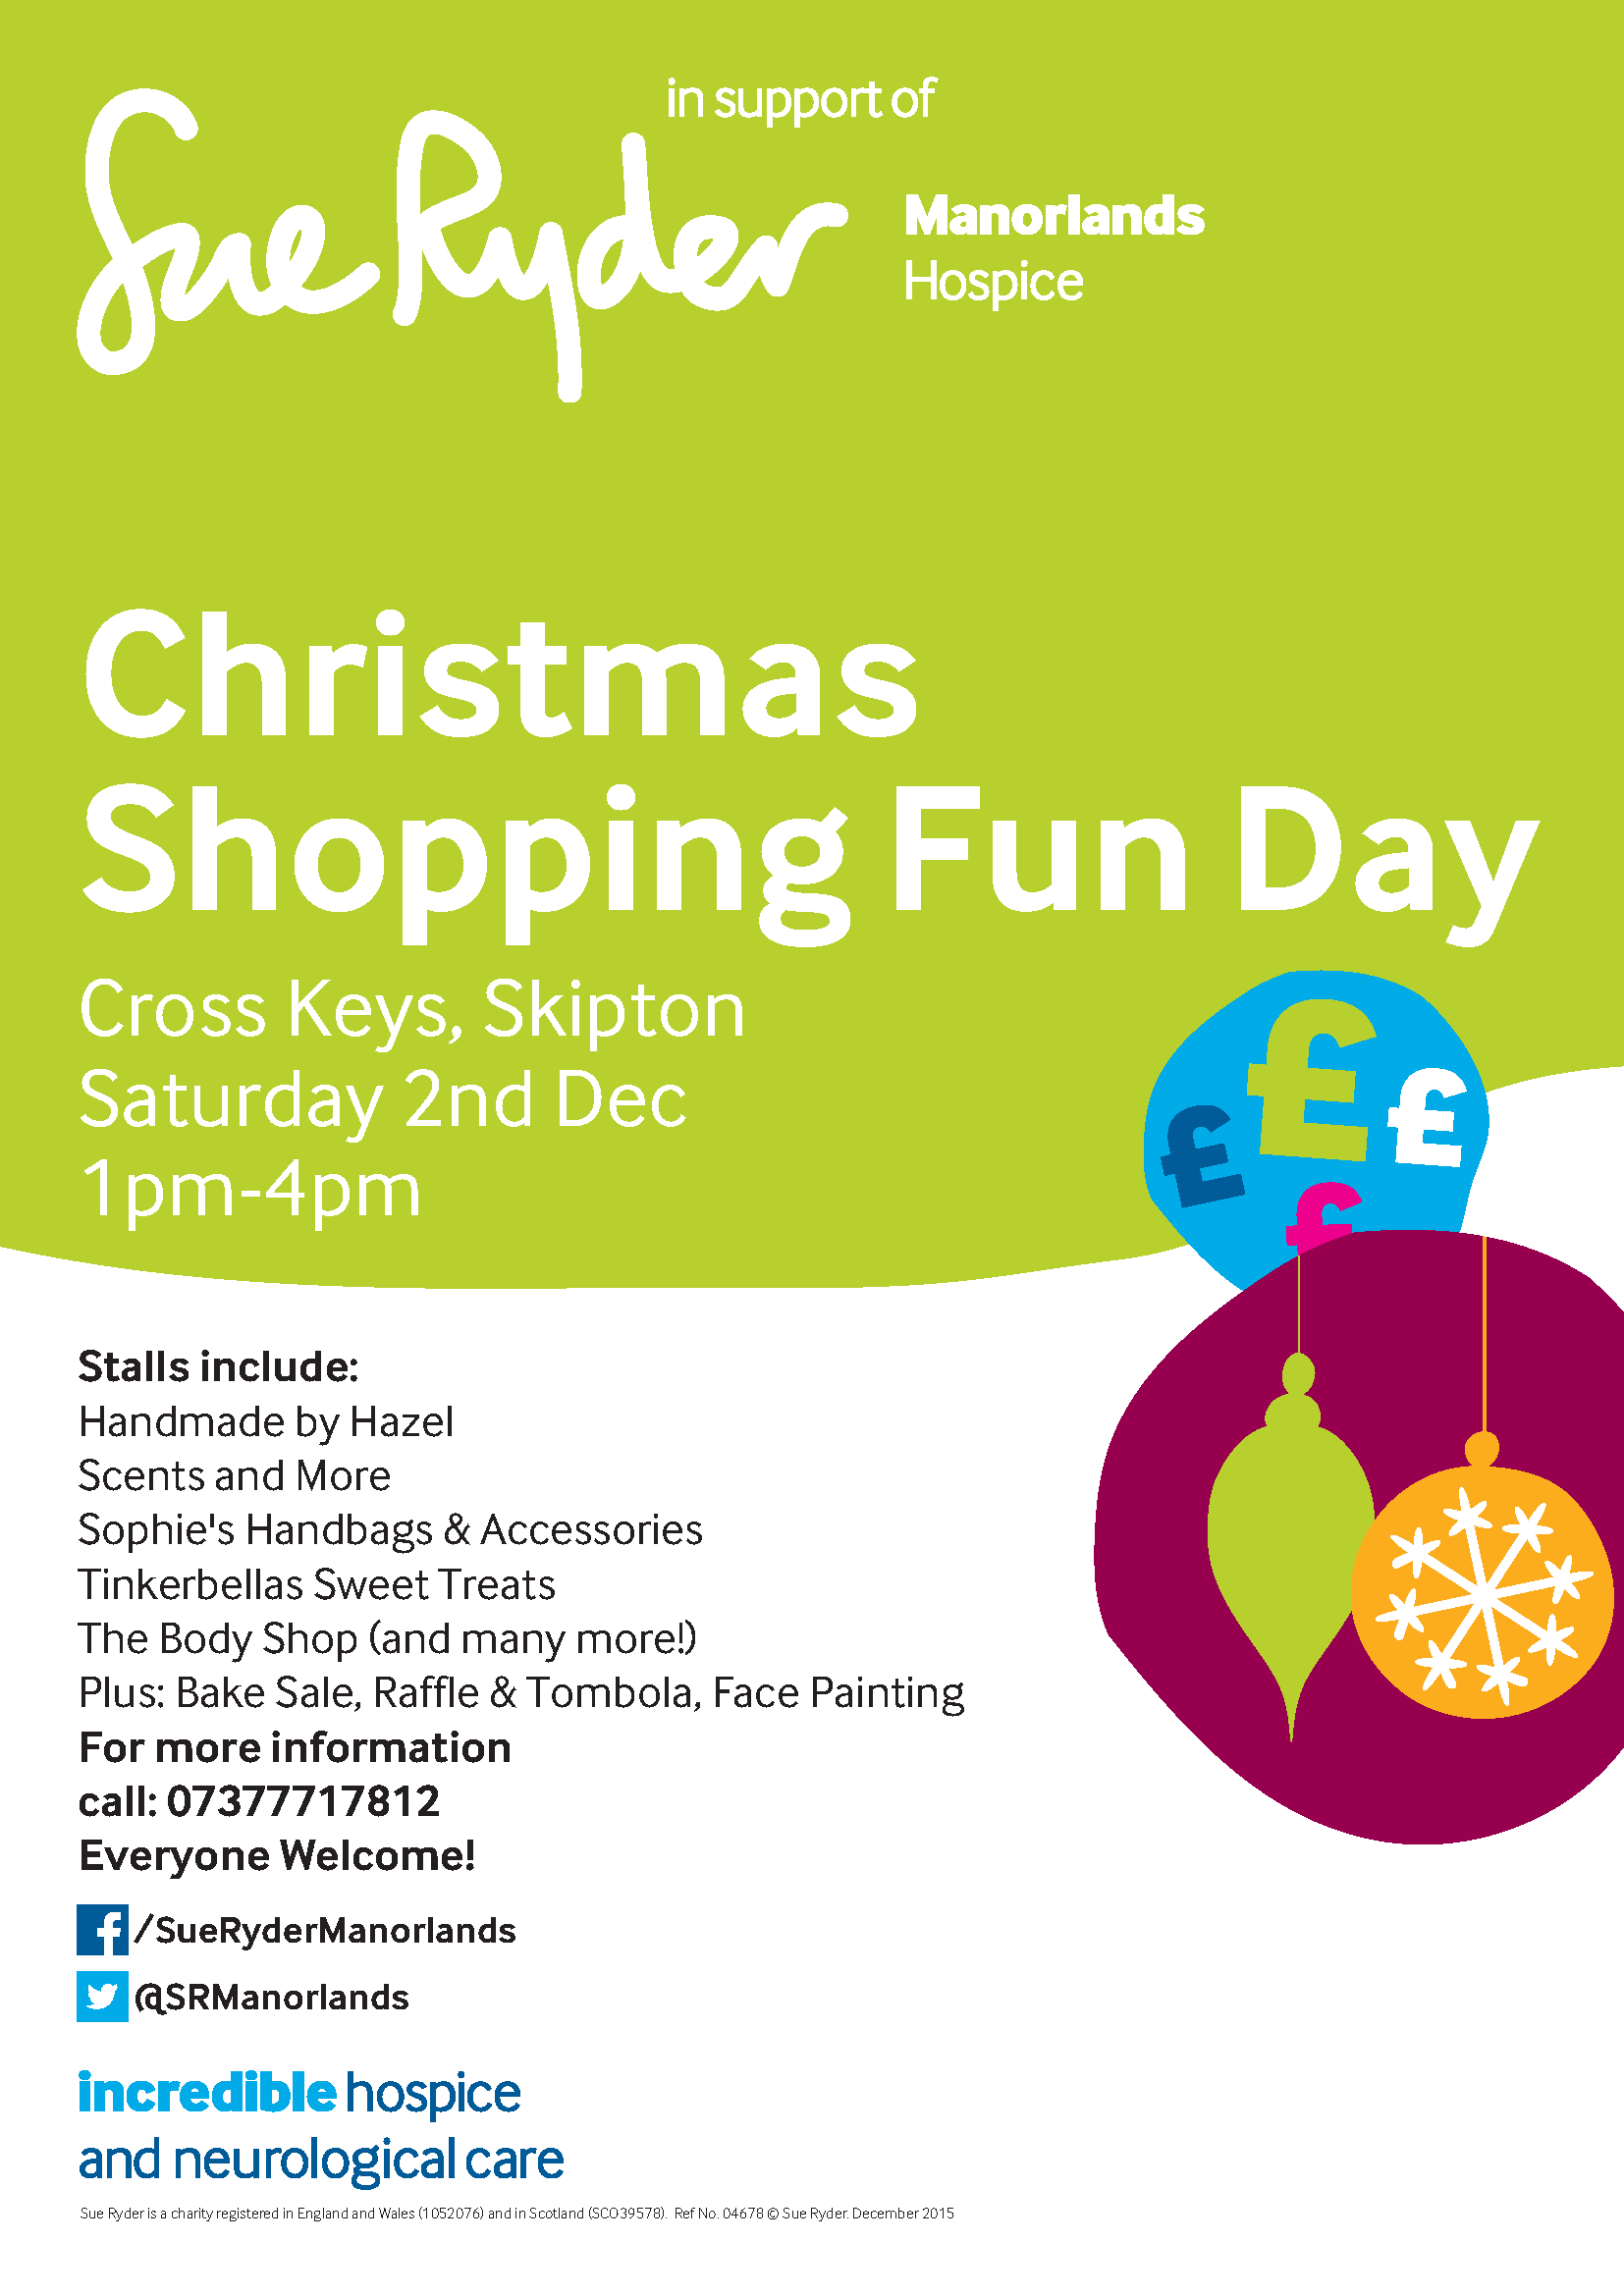 Christmas Shopping Fun Day for Manorlands Hospice